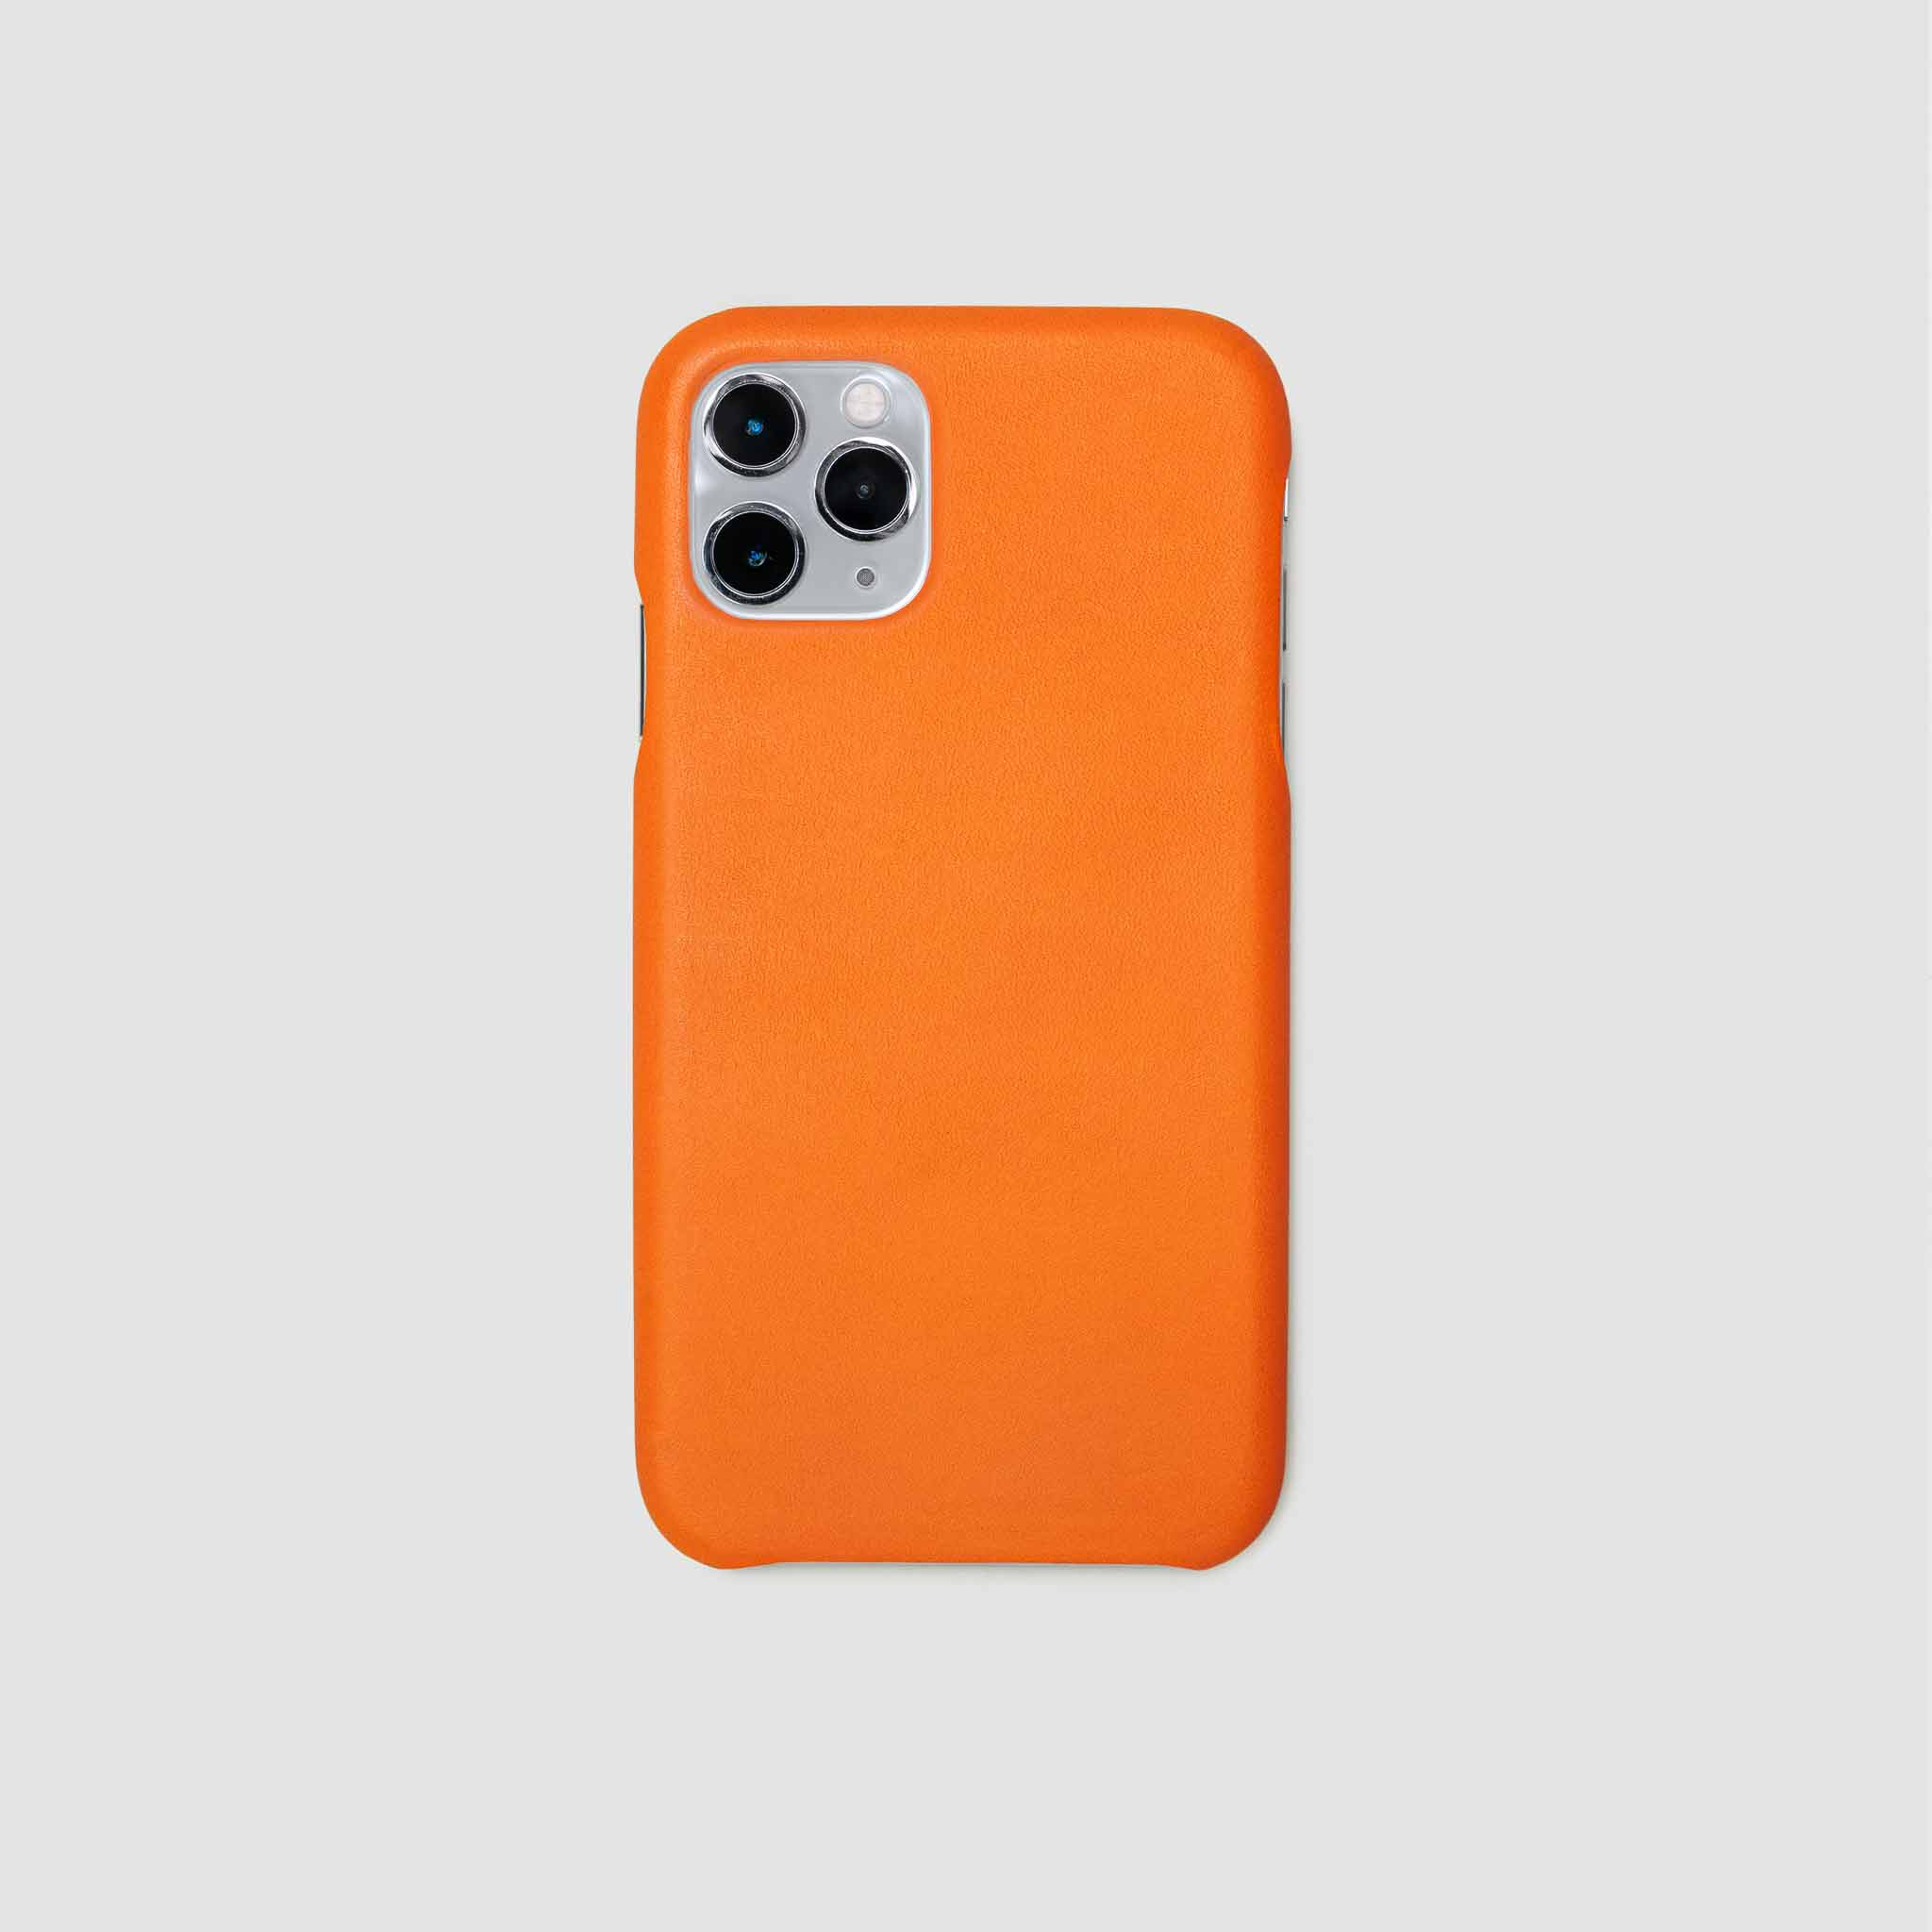 anson calder iphone case french calfskin 11 eleven pro max leather !iphone11pro-iphone11promax *hover _fshd-orange